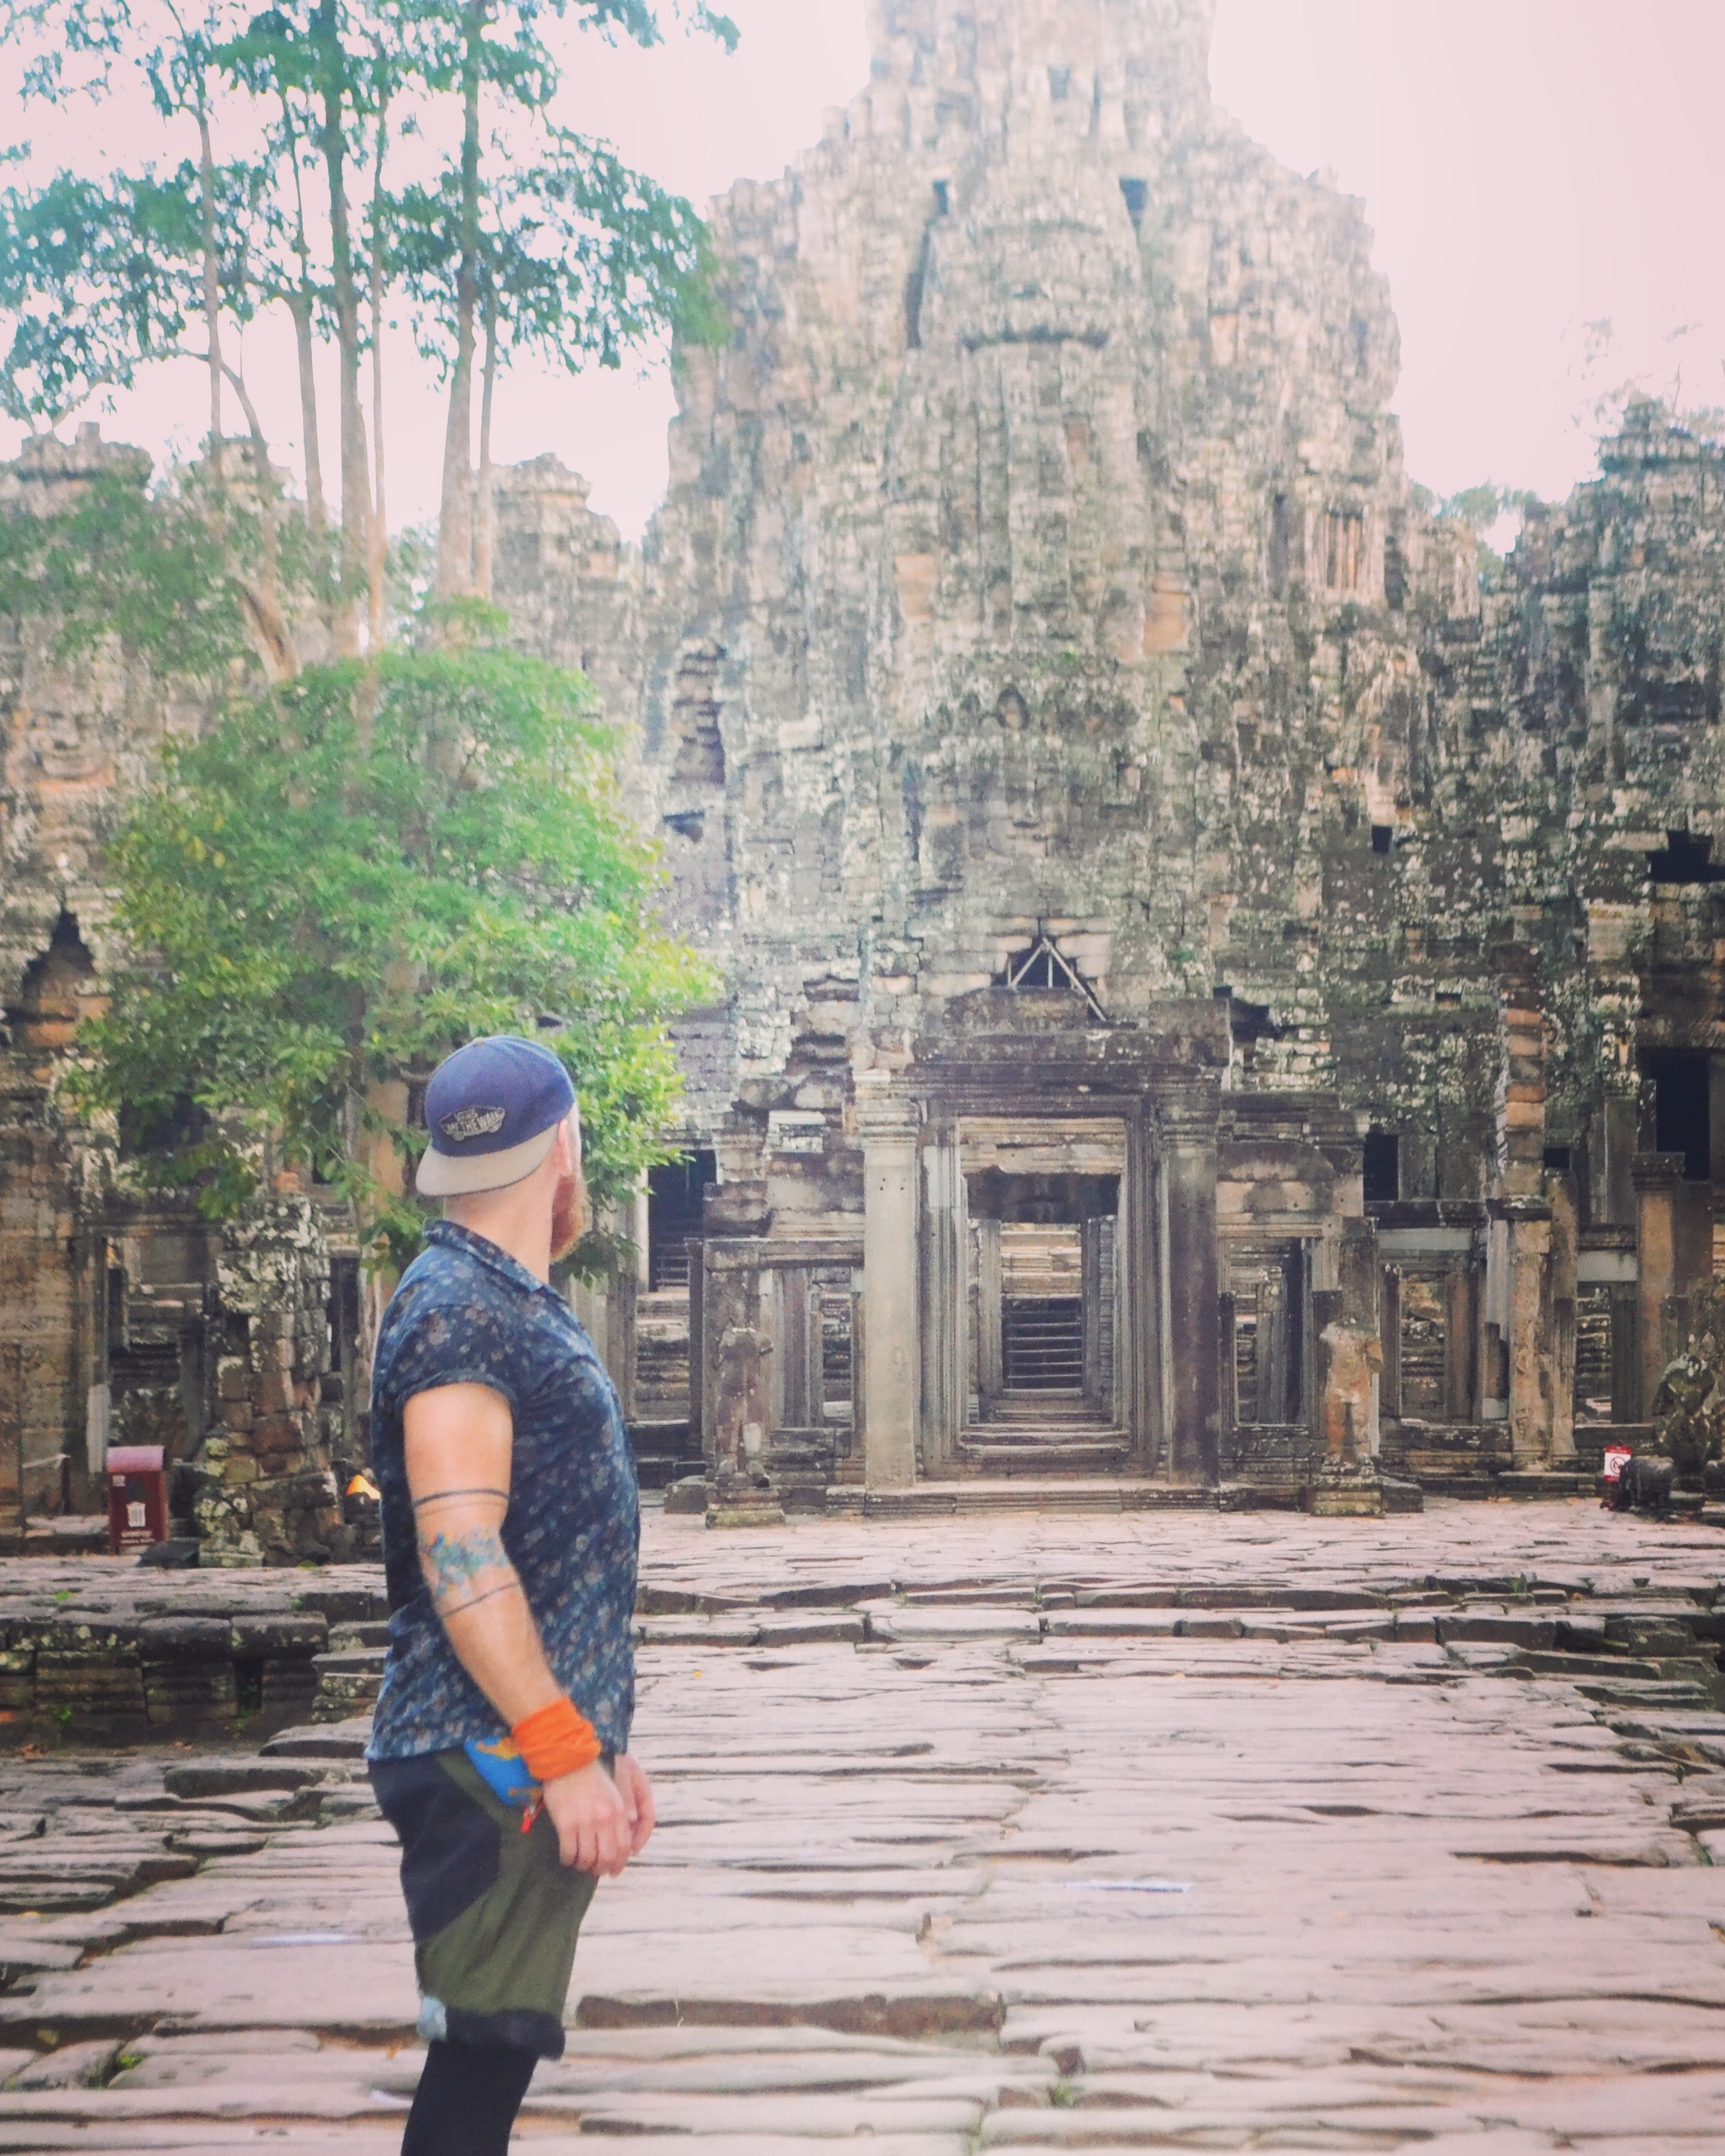 Angkor Thom, the last and most enduring capital of the Khmer Empire